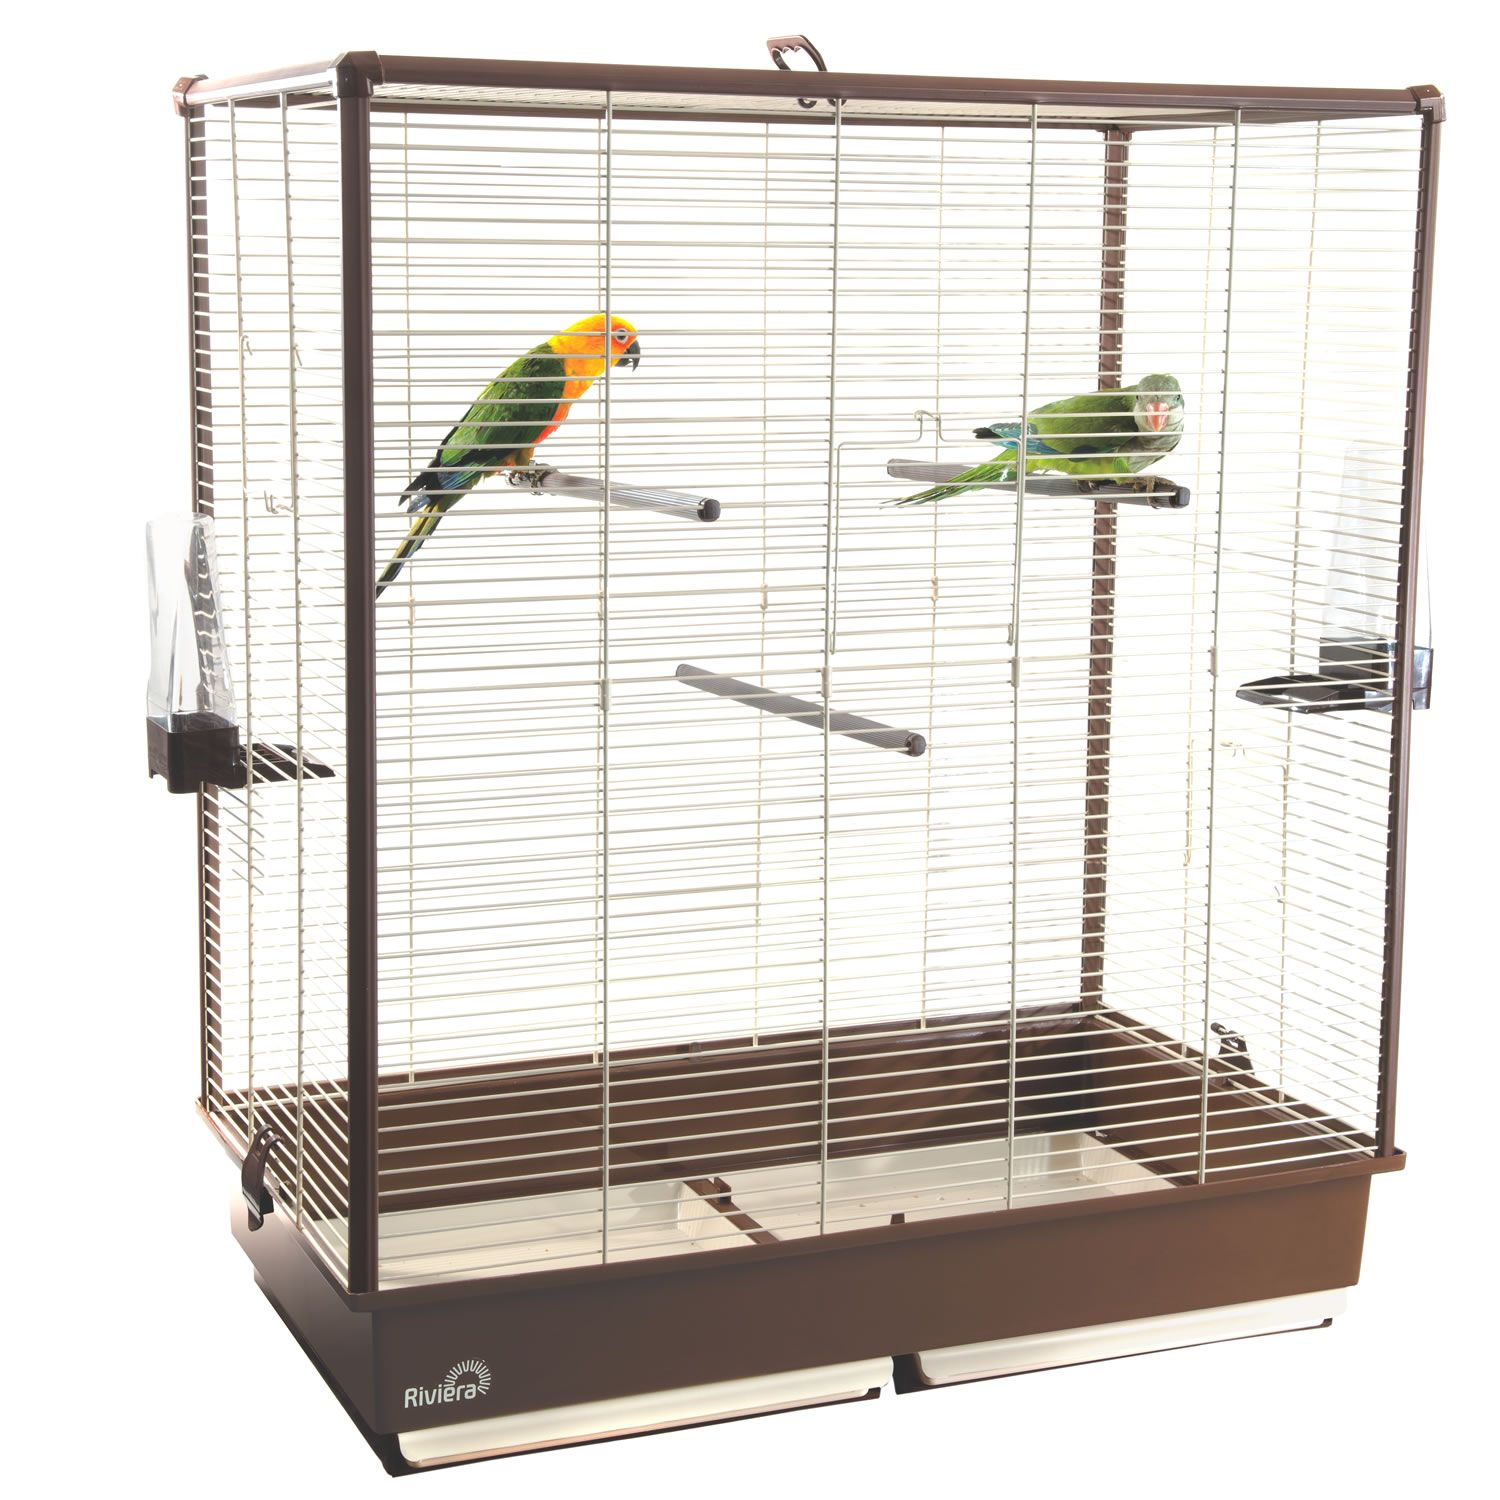 The Best Photos Medium Bird Cages For Your Rooms Parrot